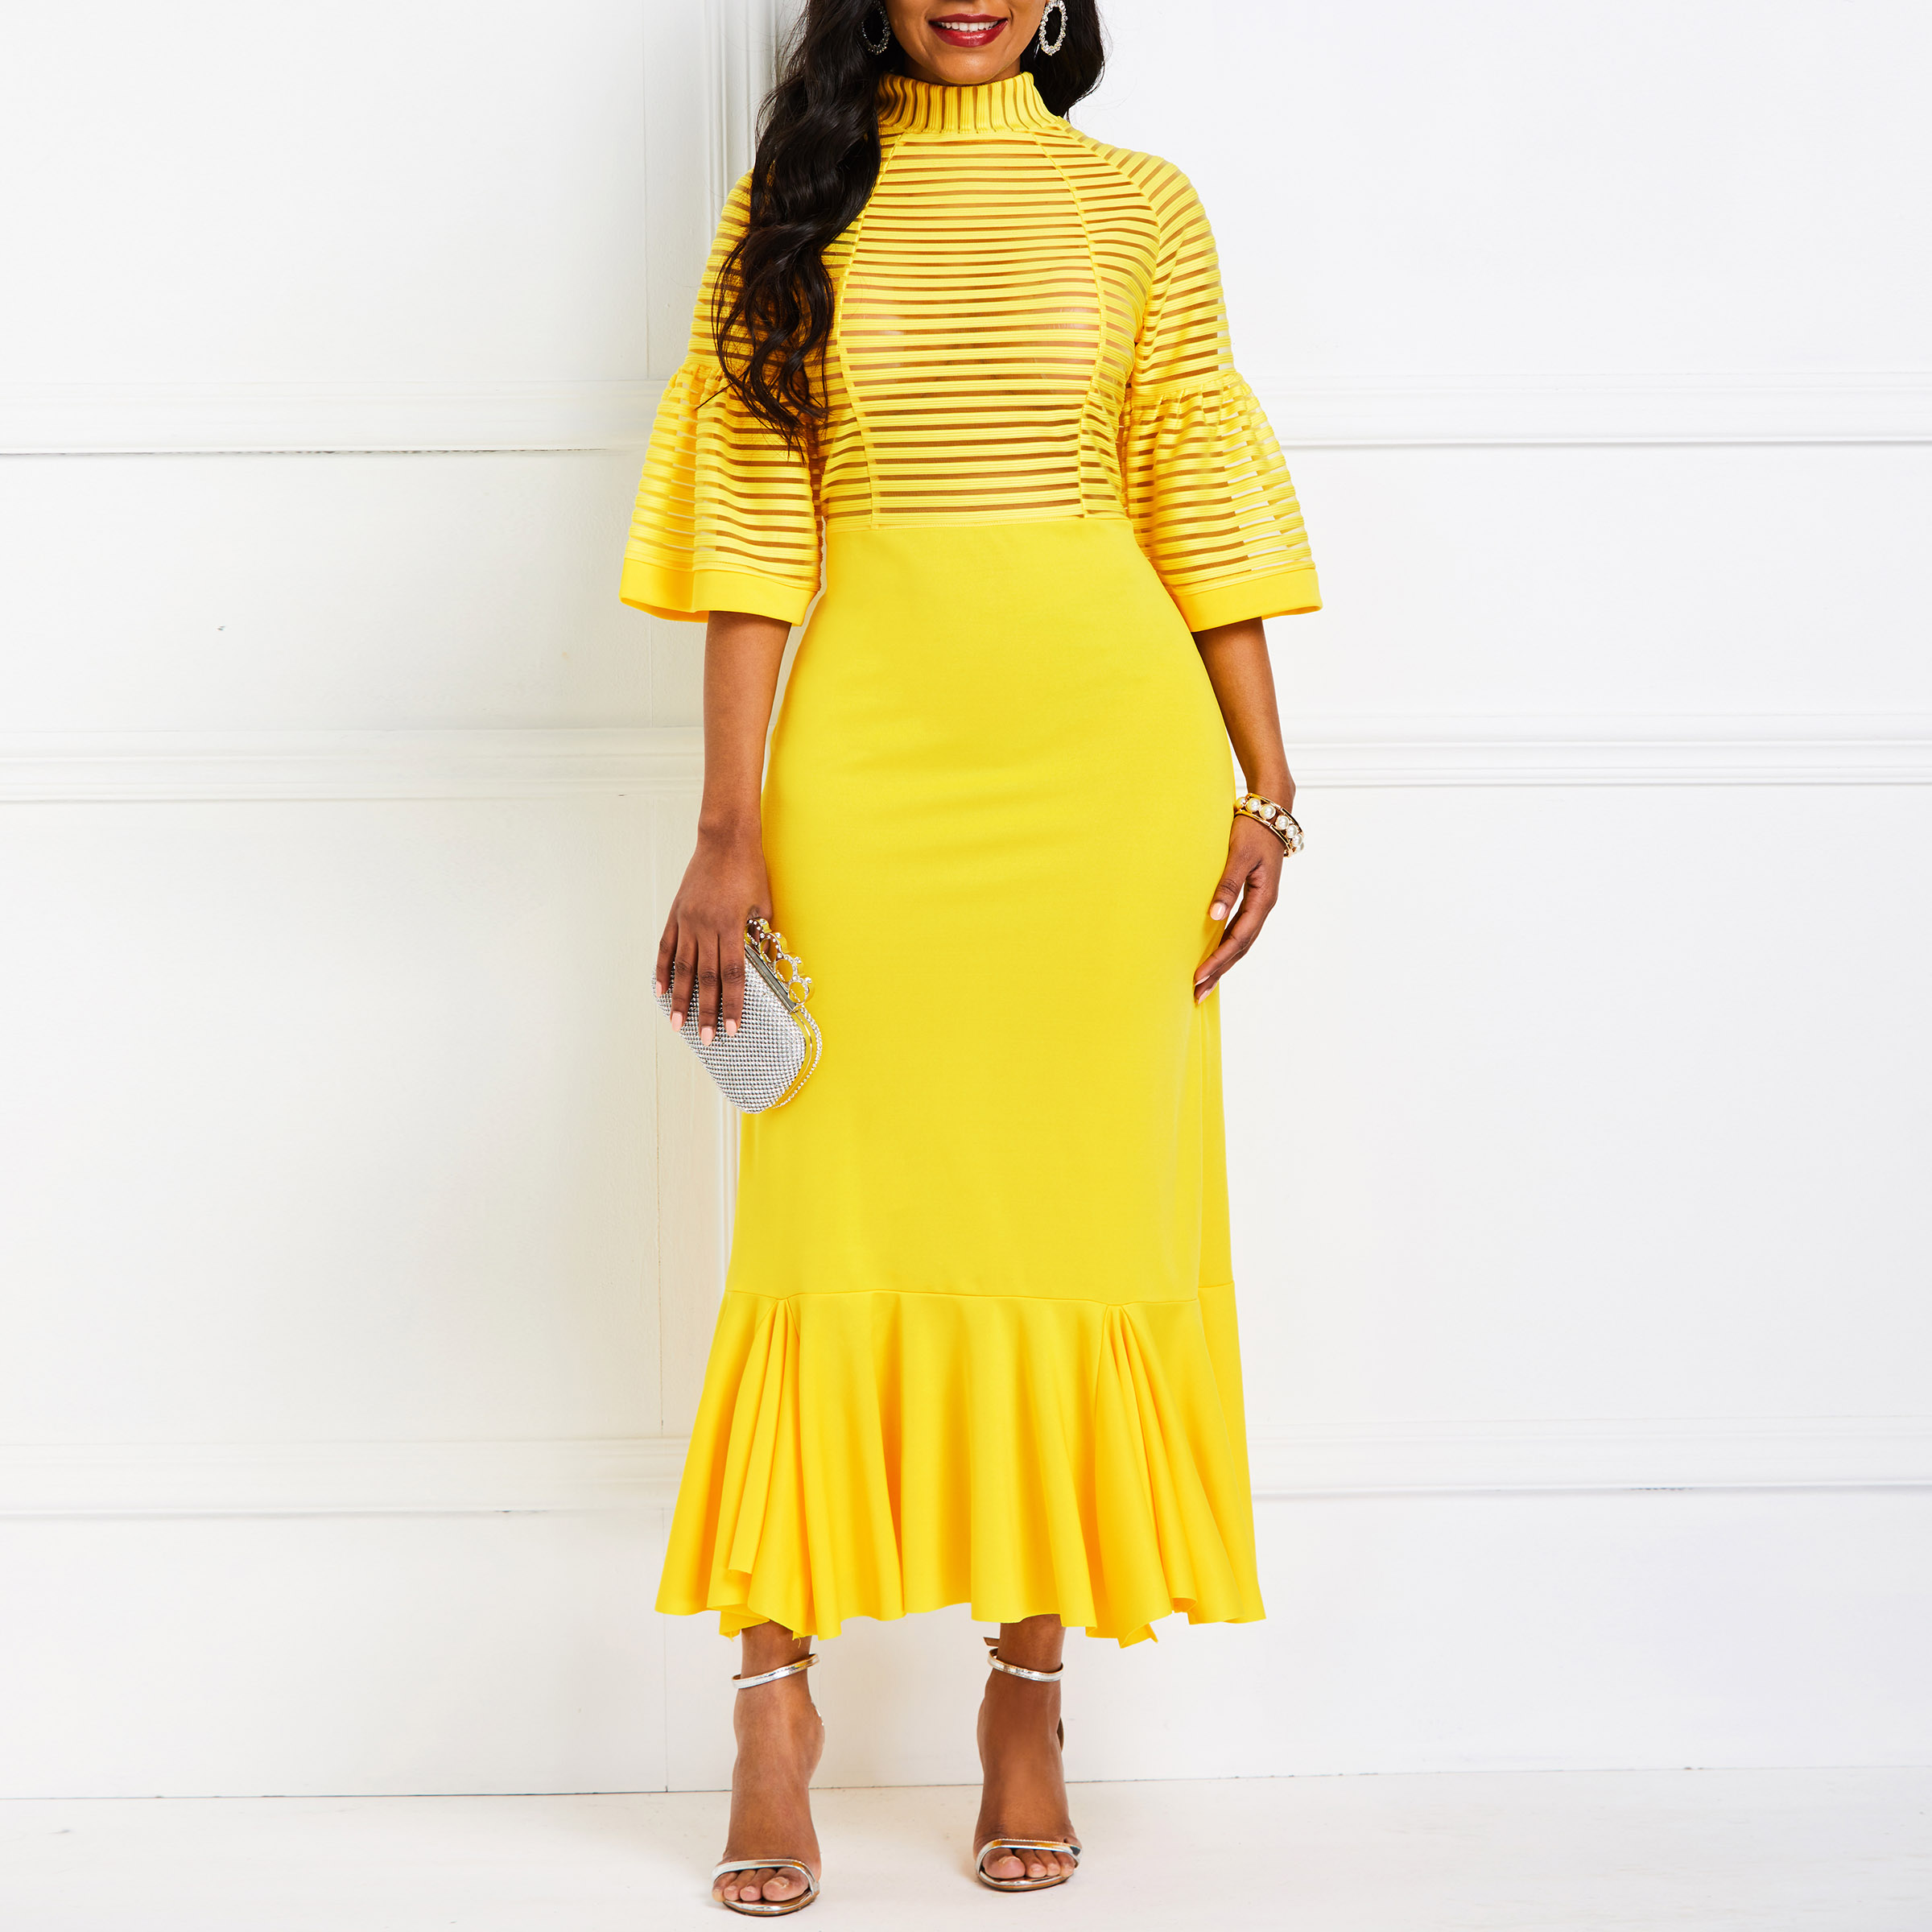 African Fashion Mid-Calf Patchwork Half Sleeve Pullover Mermaid Dresses Office Lady Sexy Elegant Retro Chic 2019 Women Hot Sale